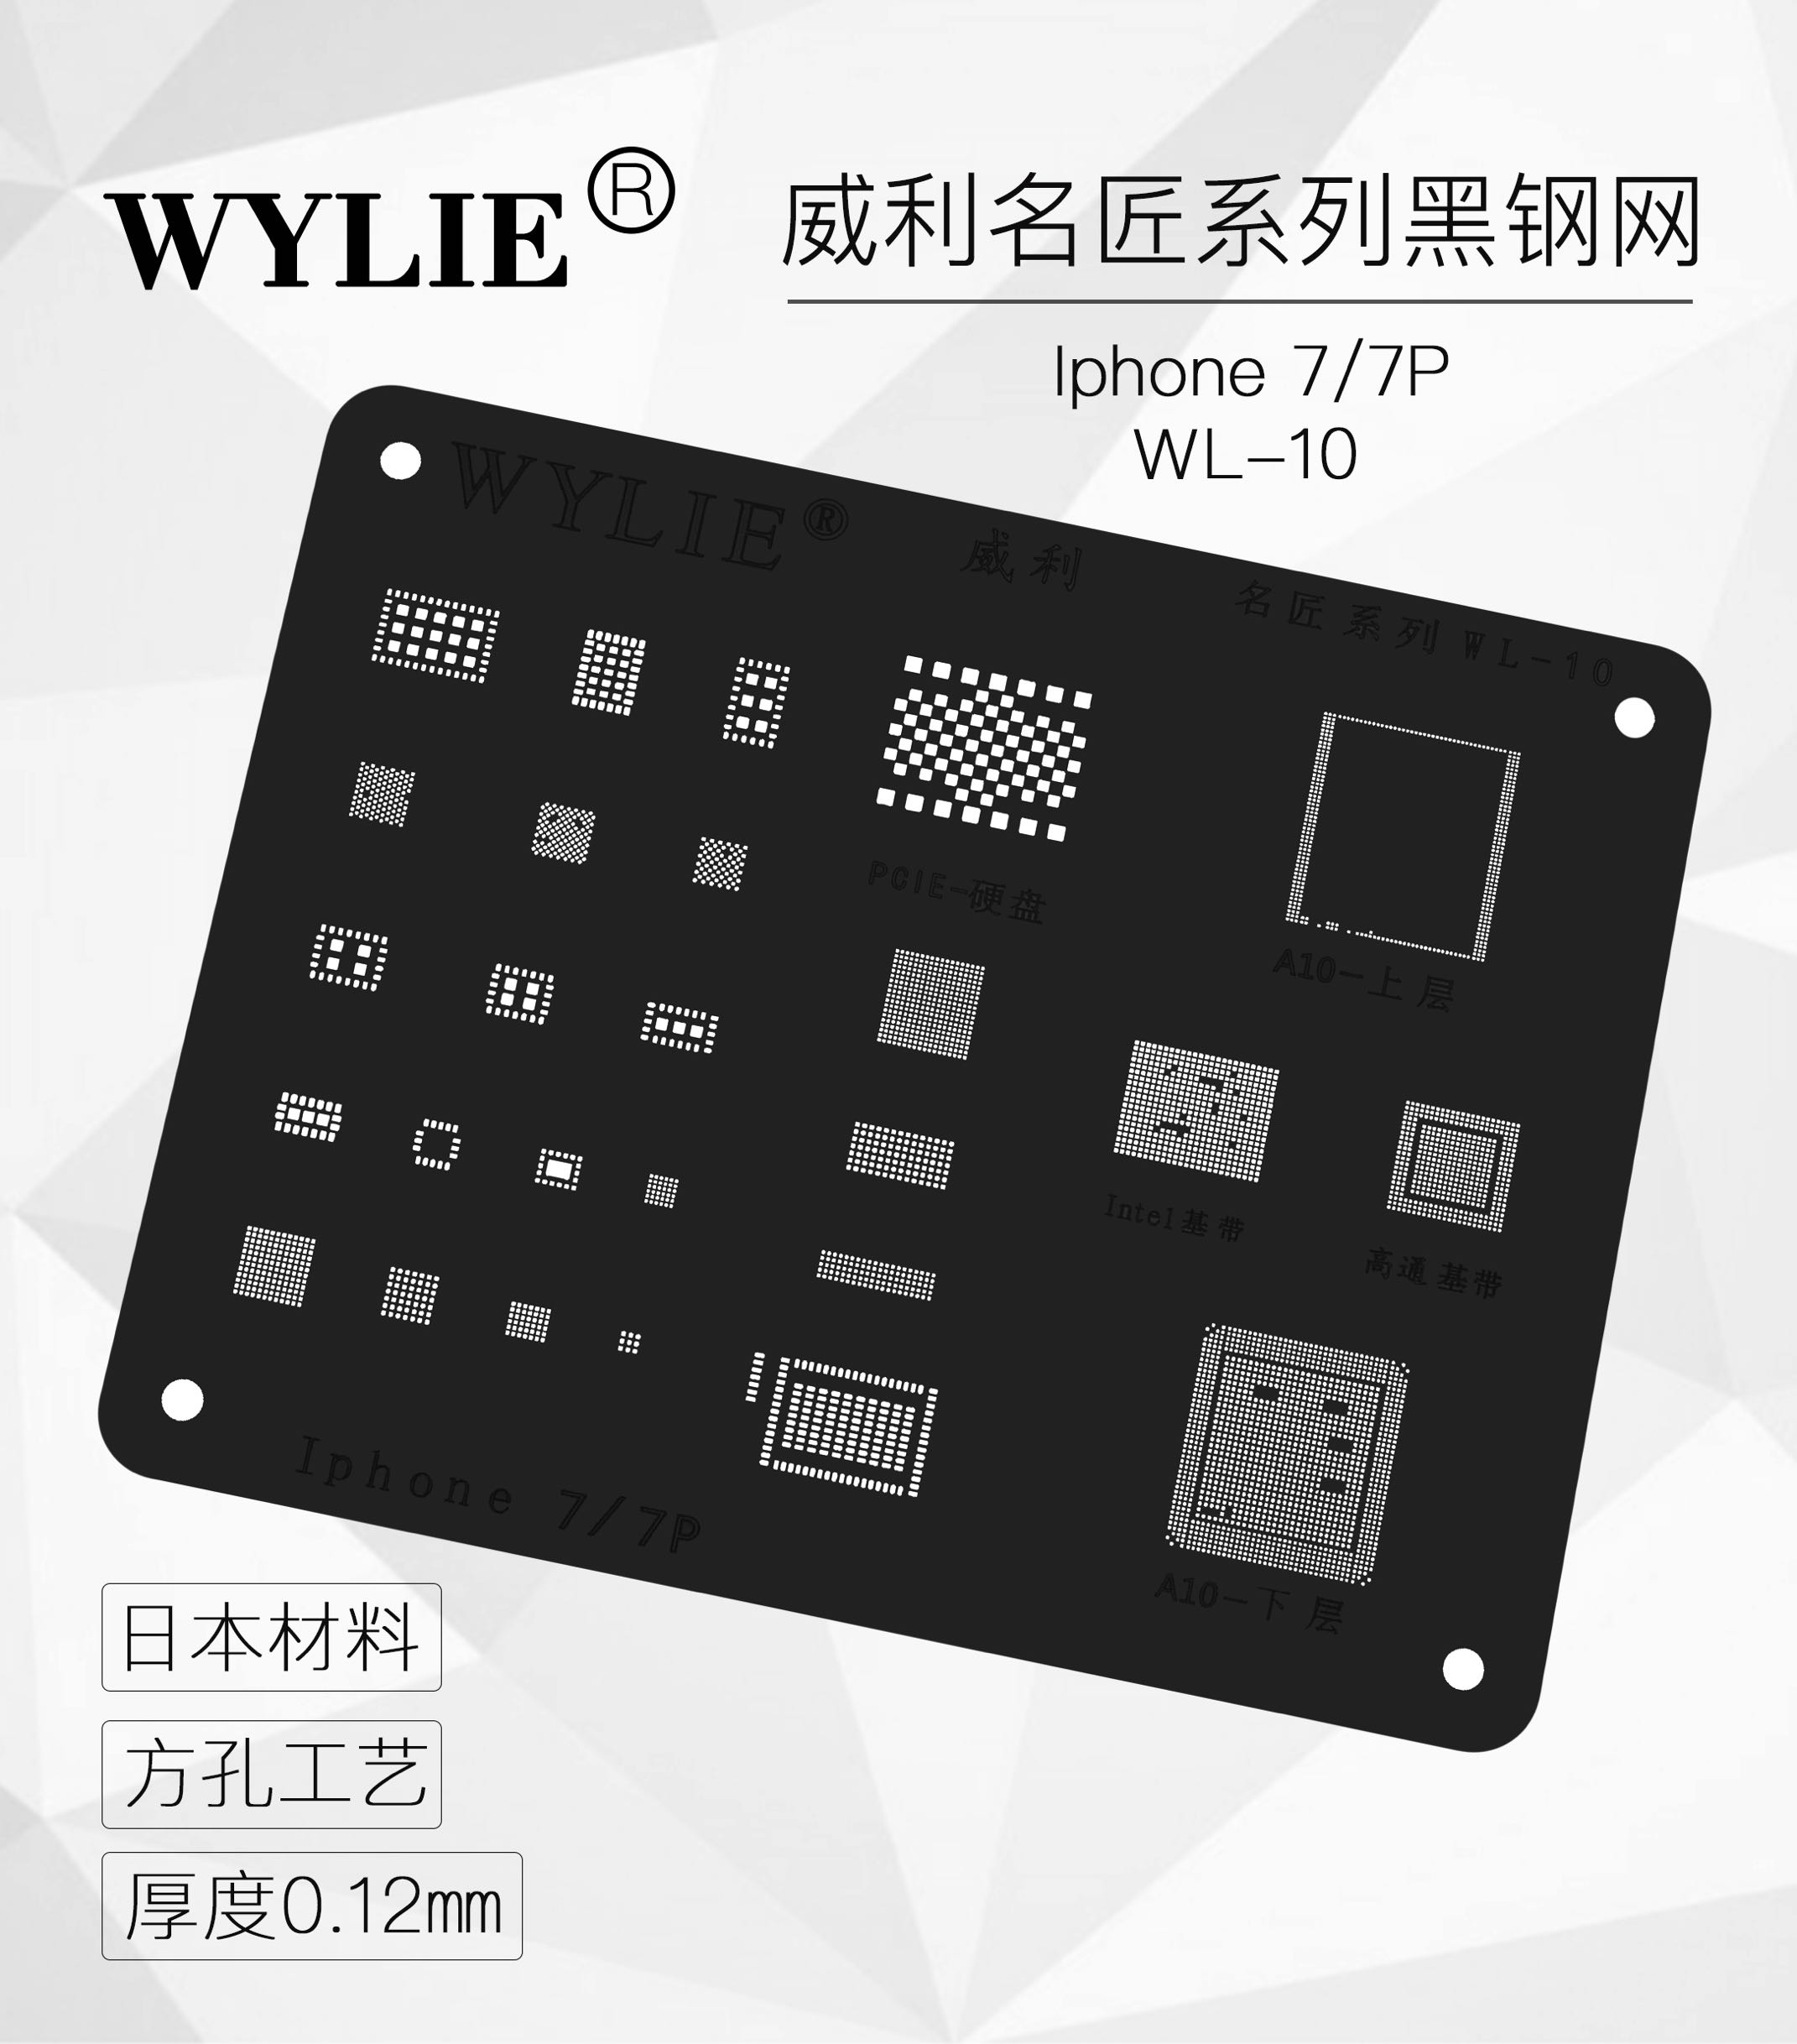 Wylie BGA Reballing Stencil for iphone 5 5s 6 6plus 6s 6splus 7 7plus 8/8 plus x xs max XR A13 A12 A11 A10 A9 A8 A7 CPU RAM chip 4